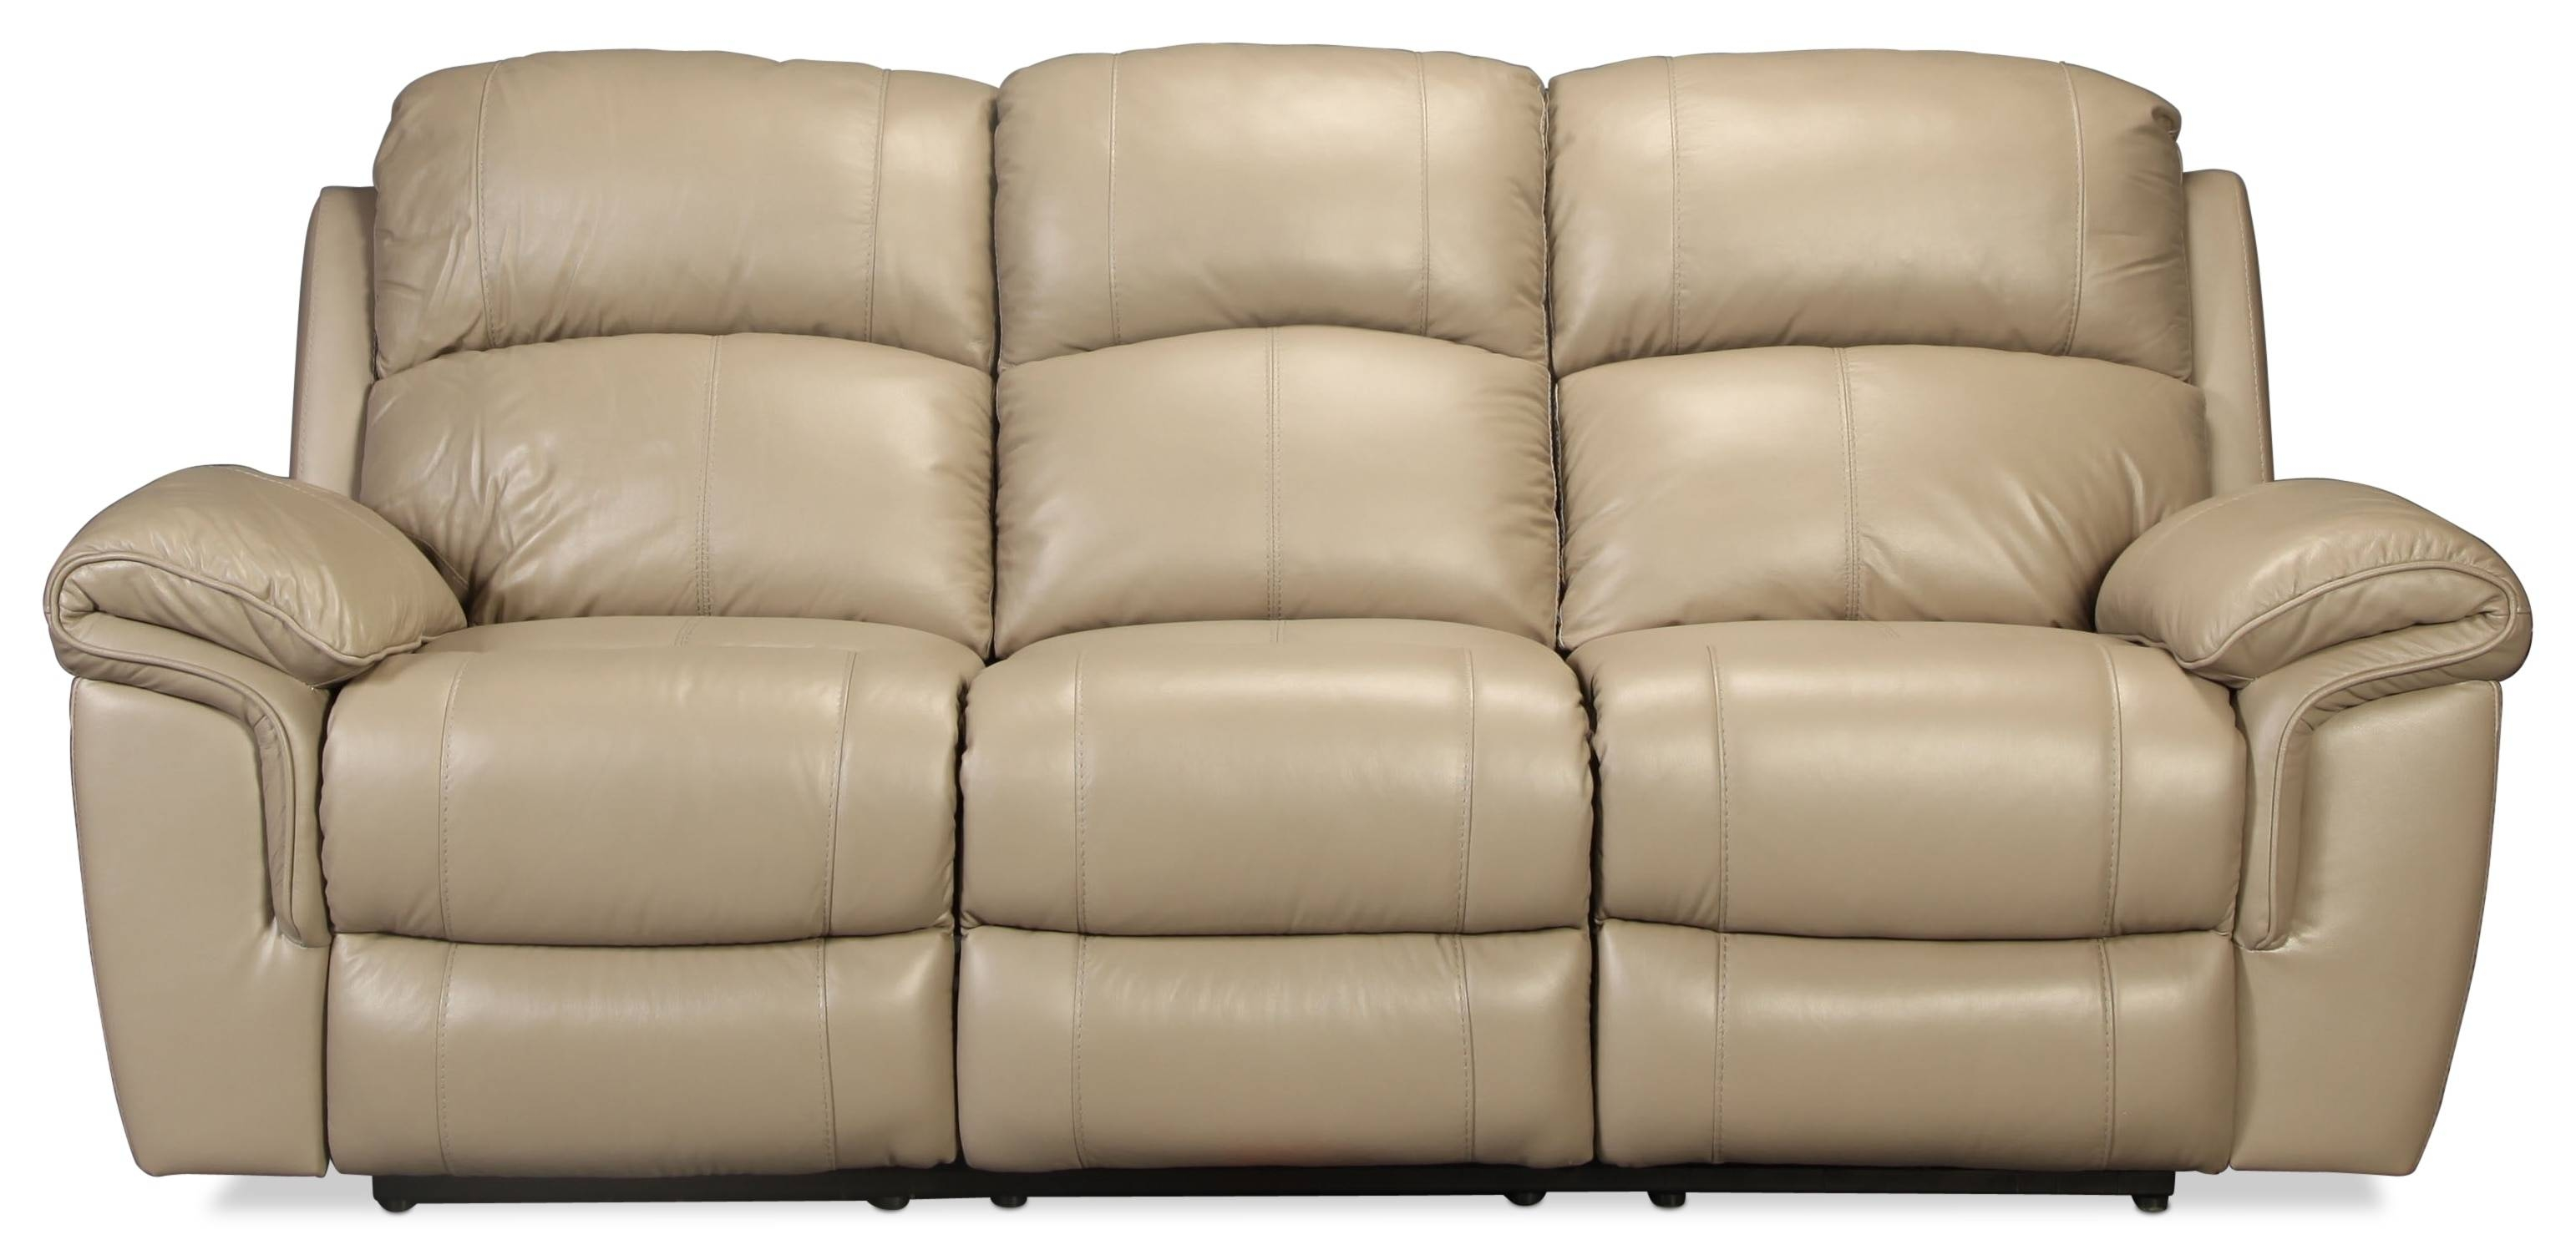 Braxton Power Reclining Sofa | Levin Furniture in Braxton Sofa (Image 10 of 30)